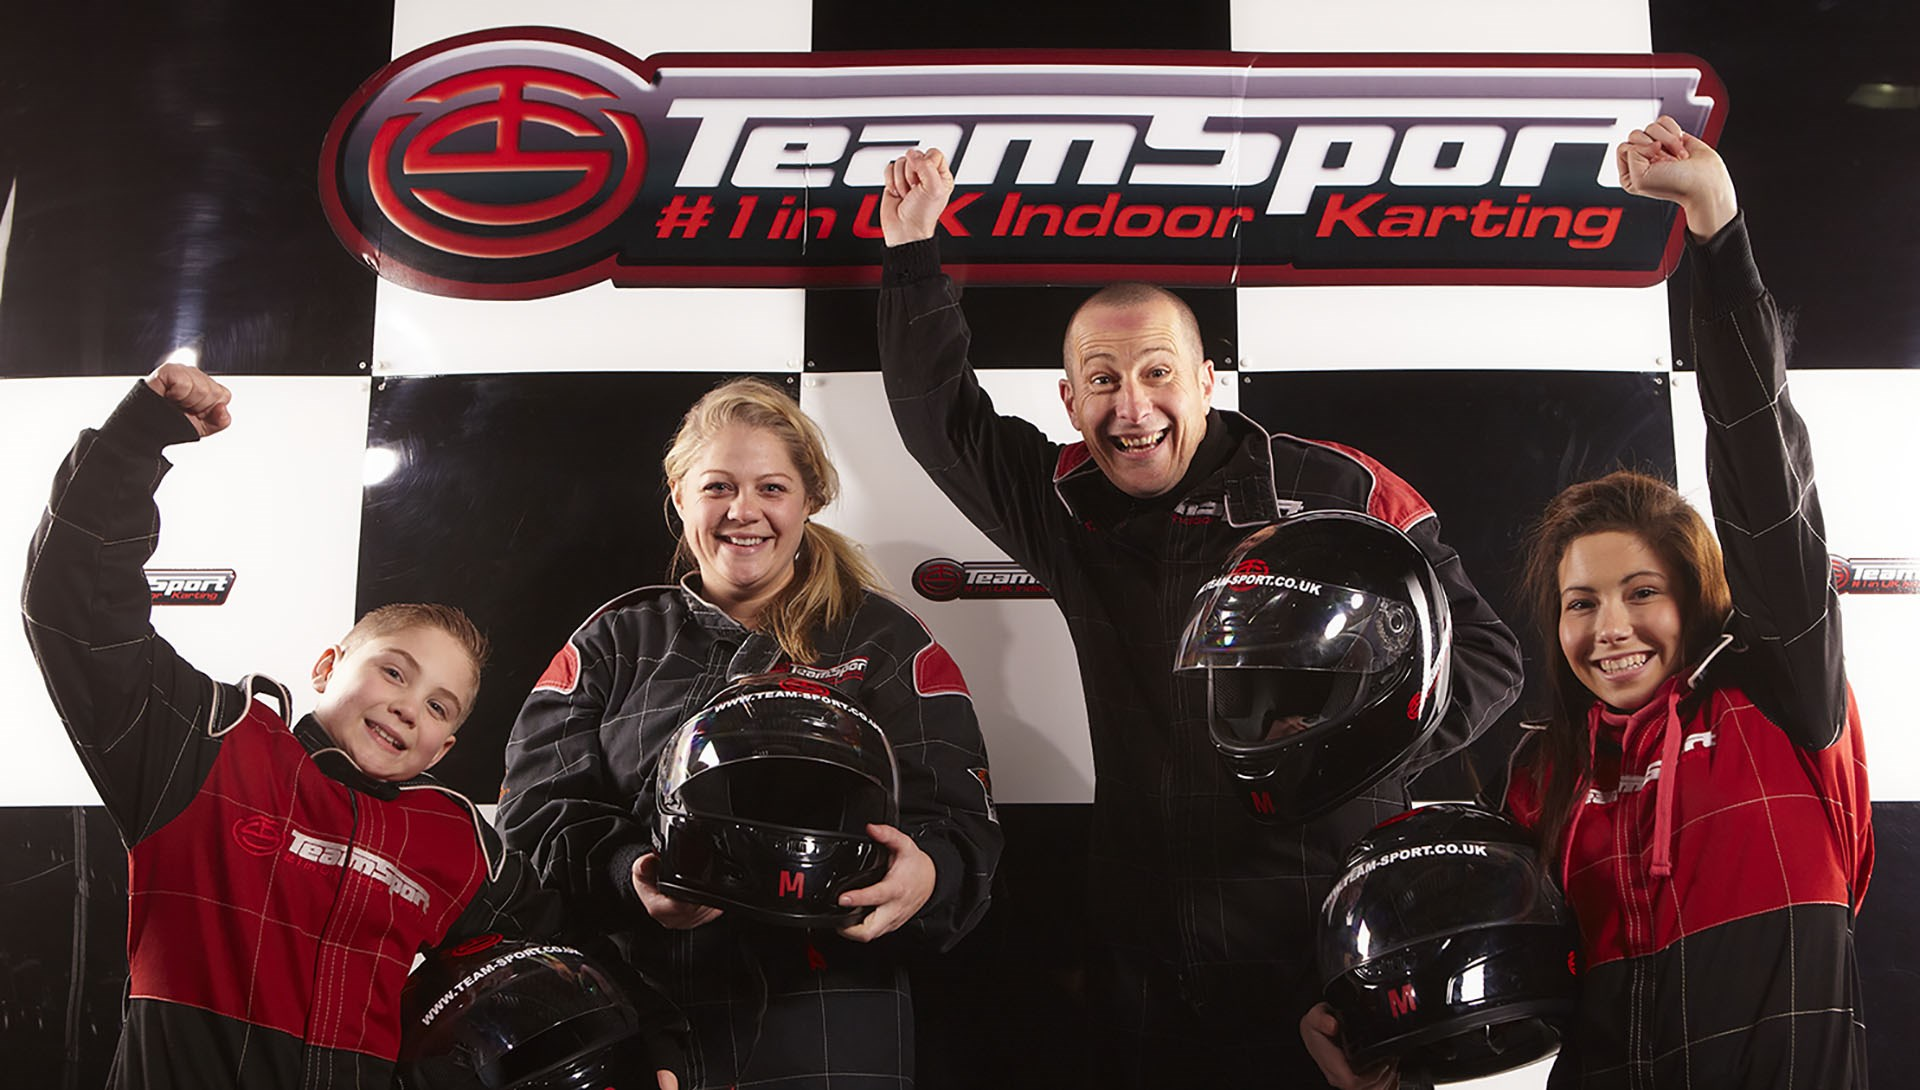 TeamSport_Go_Karting_Family_Madness_Dates_1920x1090-min.jpg